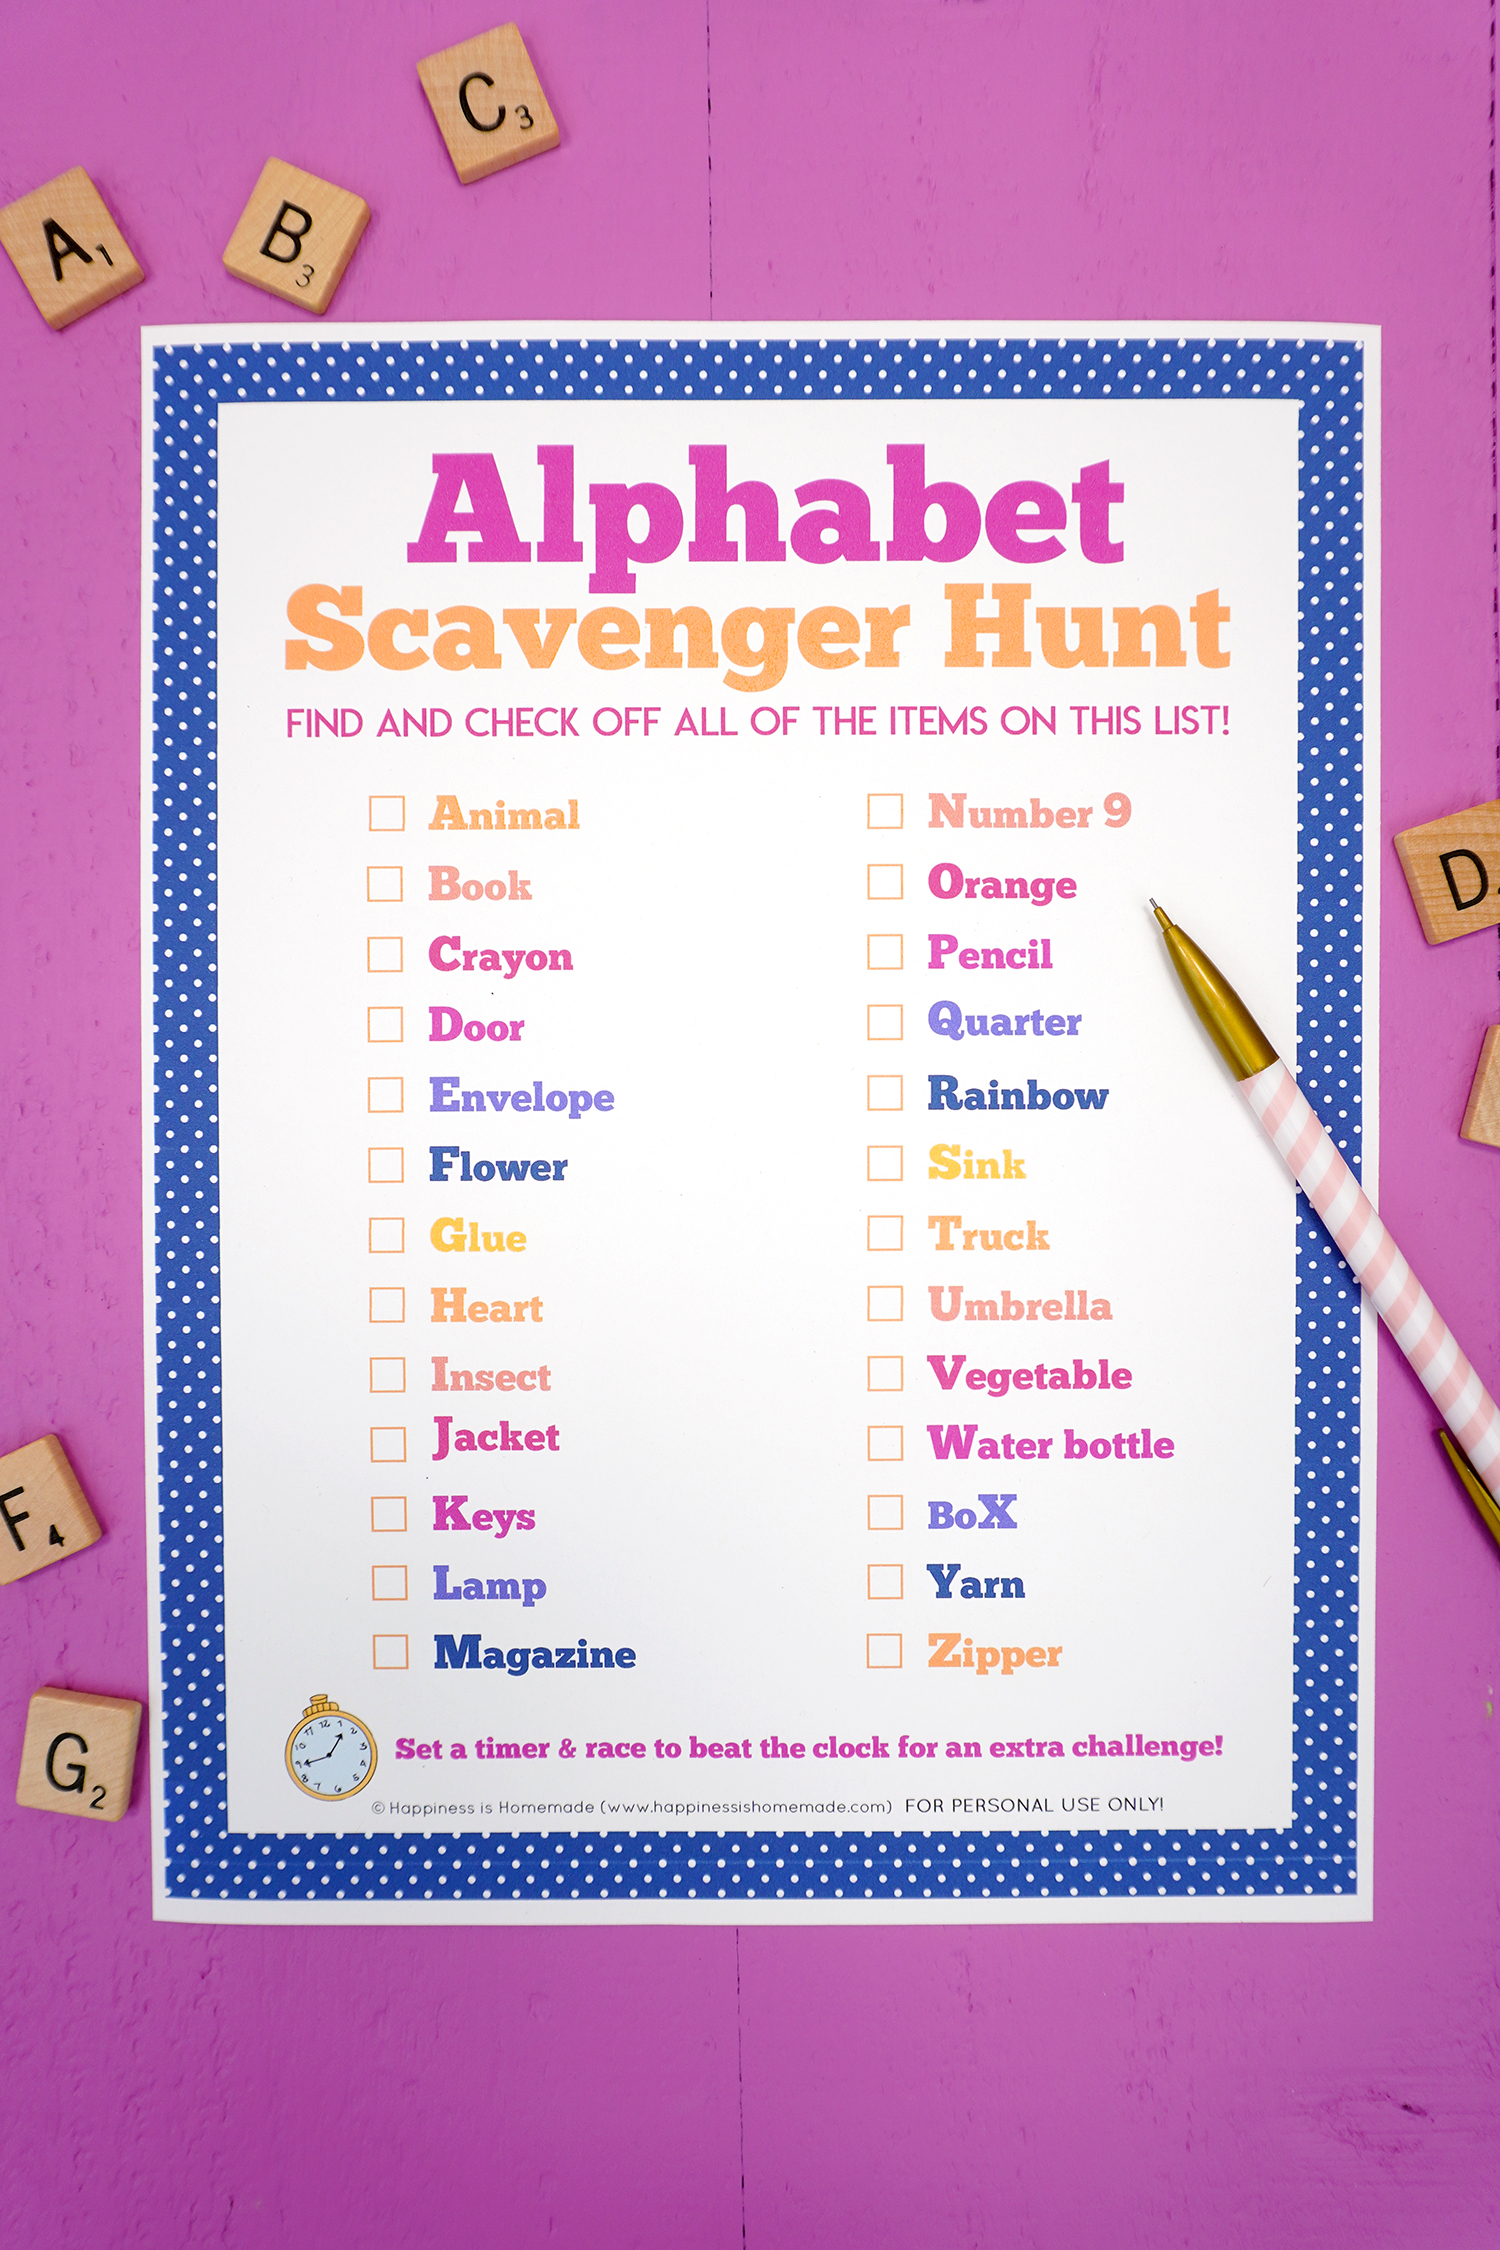 Alphabet scavenger hunt printable on purple background with pink pencil and ABC alphabet Scrabble tiles